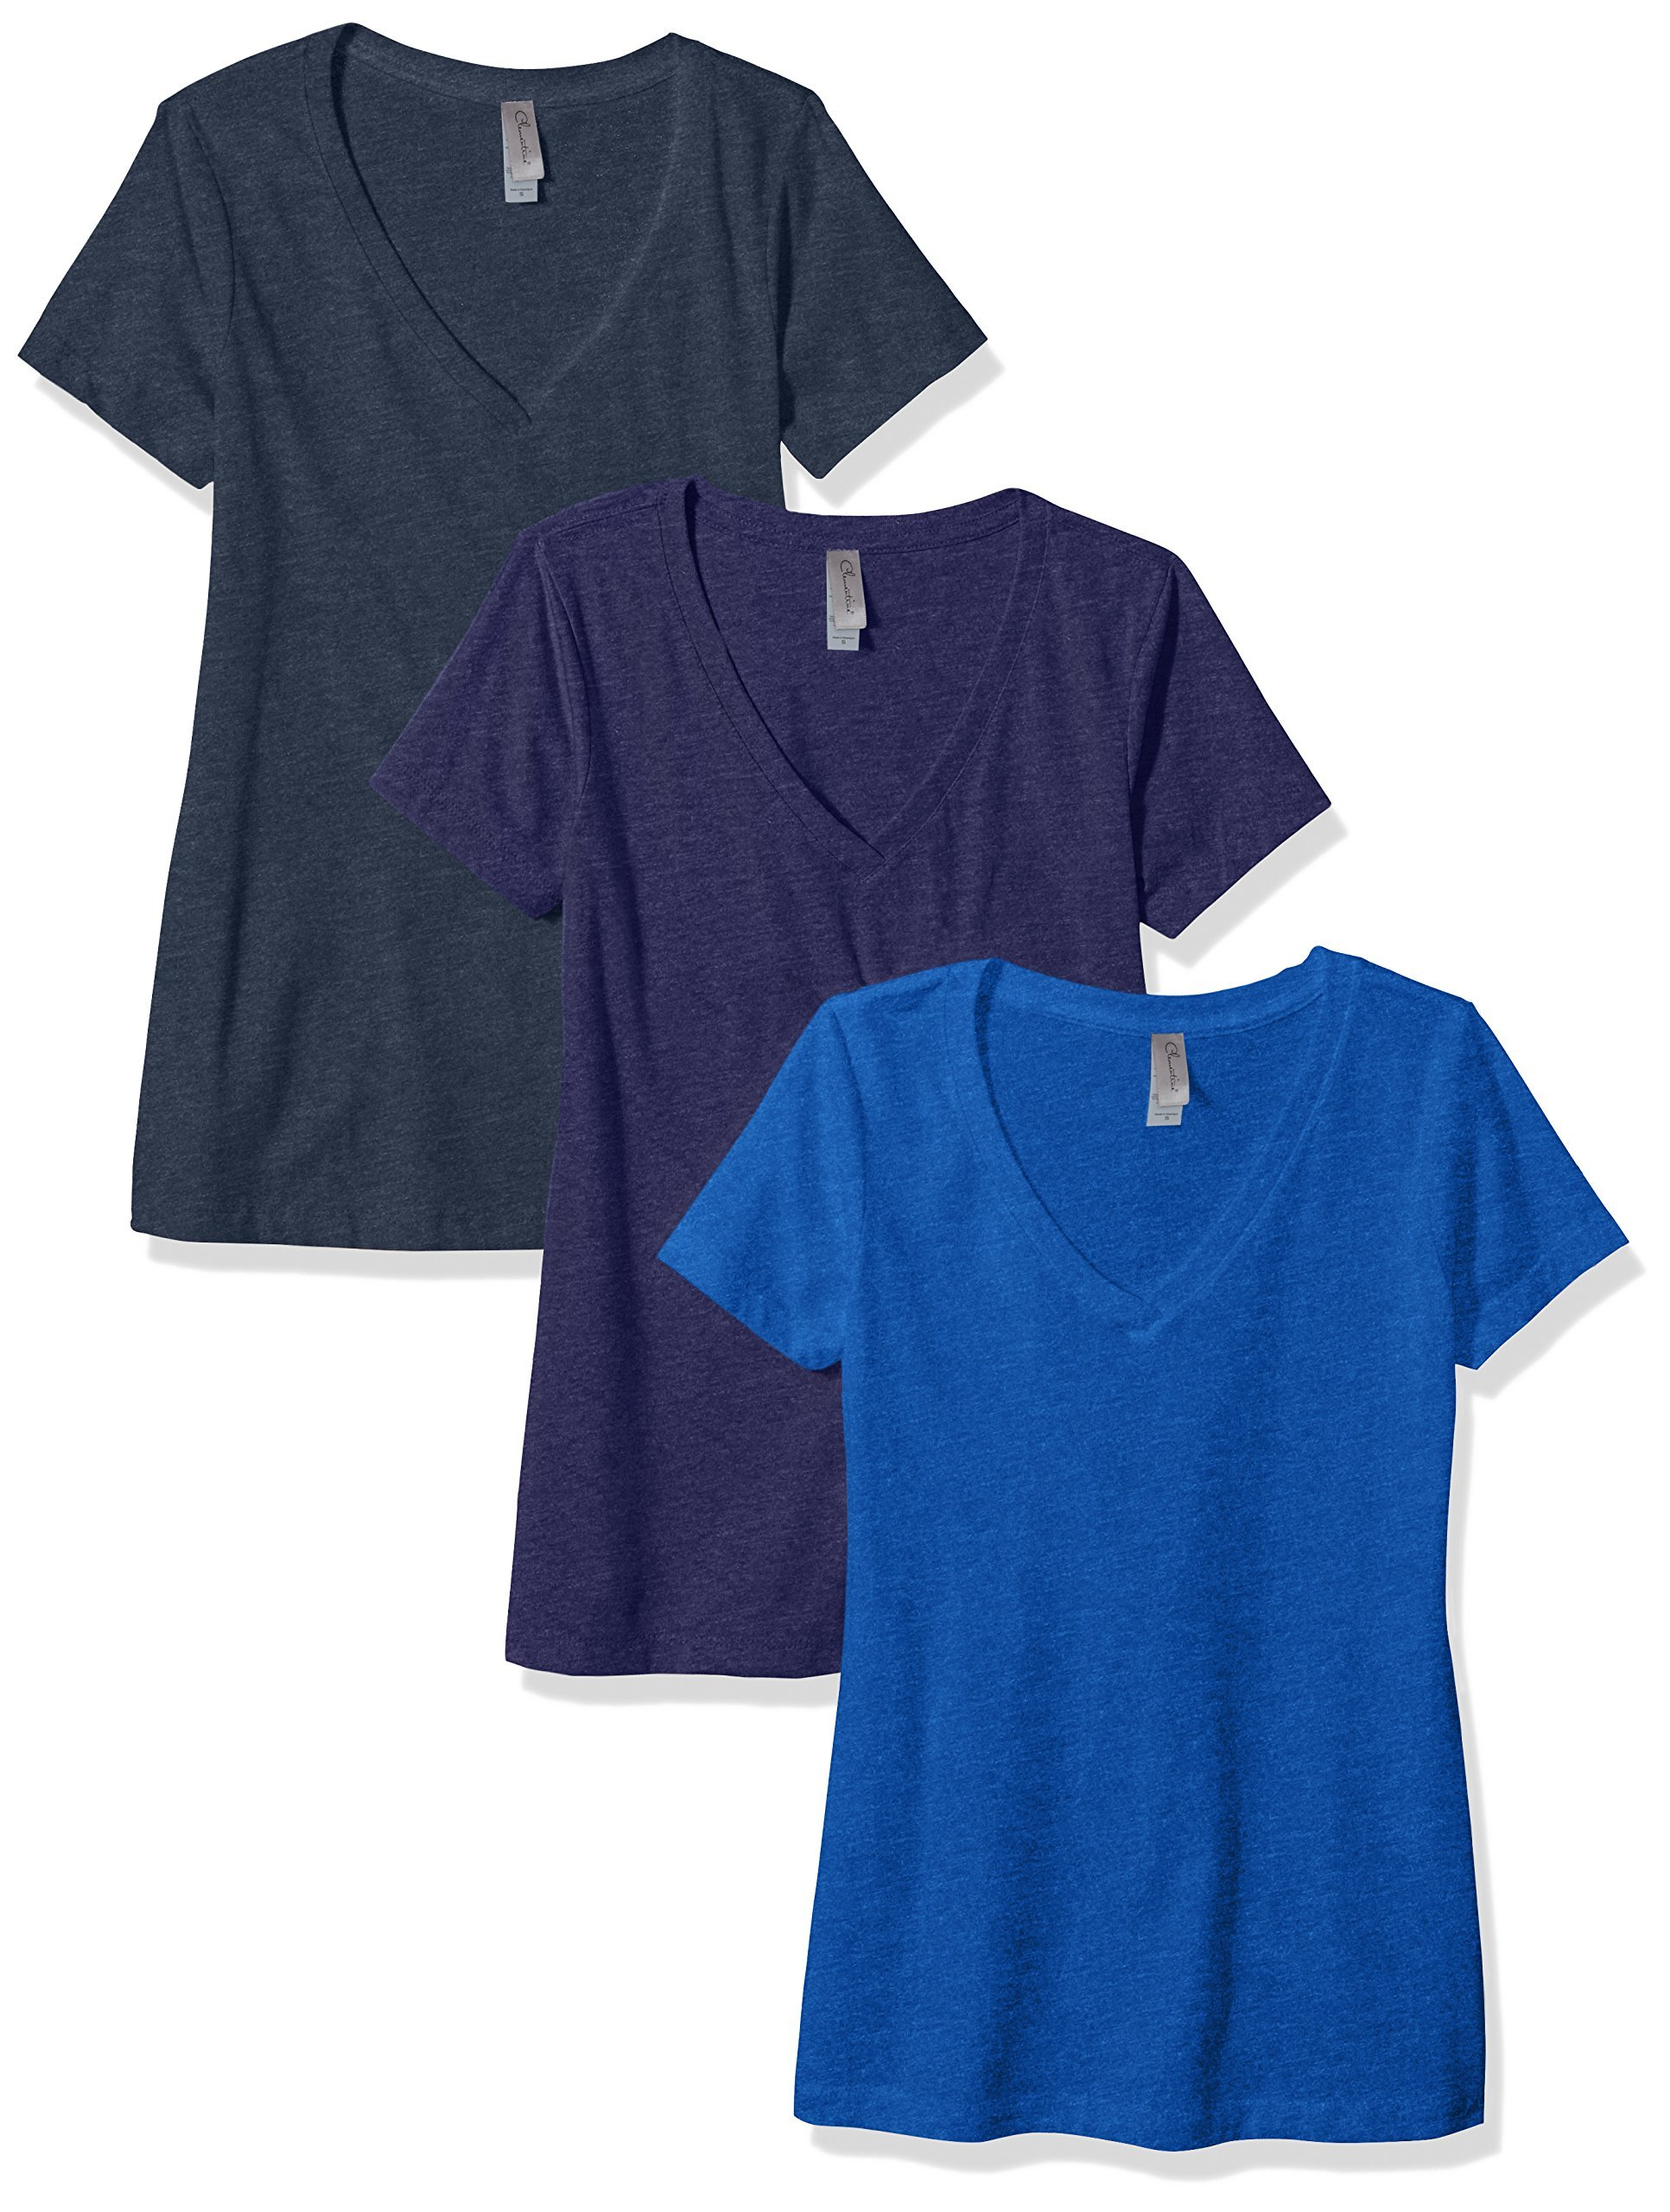 Clementine Apparel Women's Petite Plus Deep V Neck Tee (Pack of 3), Storm/Midnight Navy/Royal, XL